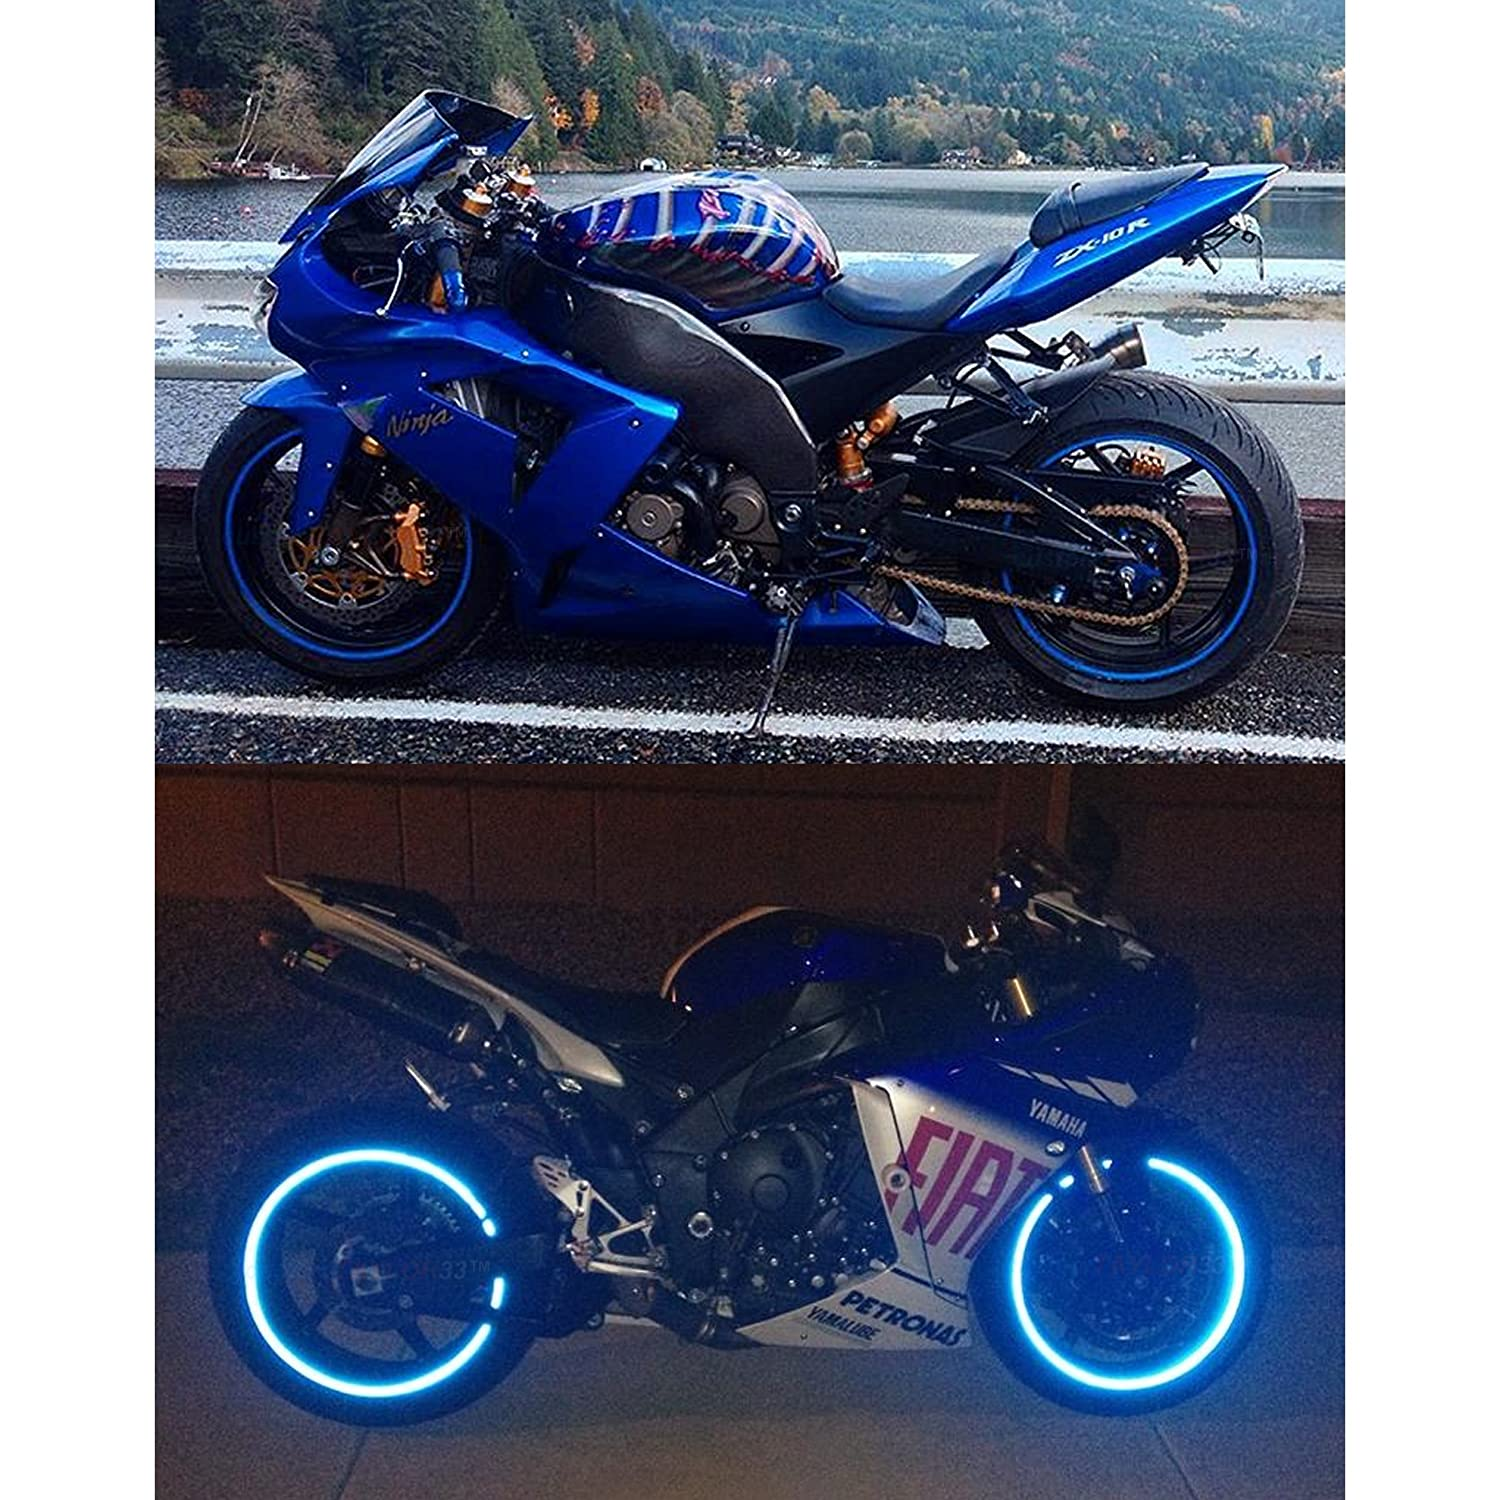 18//21 Blue High Intensity Grade Reflective Copyrighted Safety Rim Tapes Must select your rim size Combination Rim Size All Vehicles customTAYLOR33